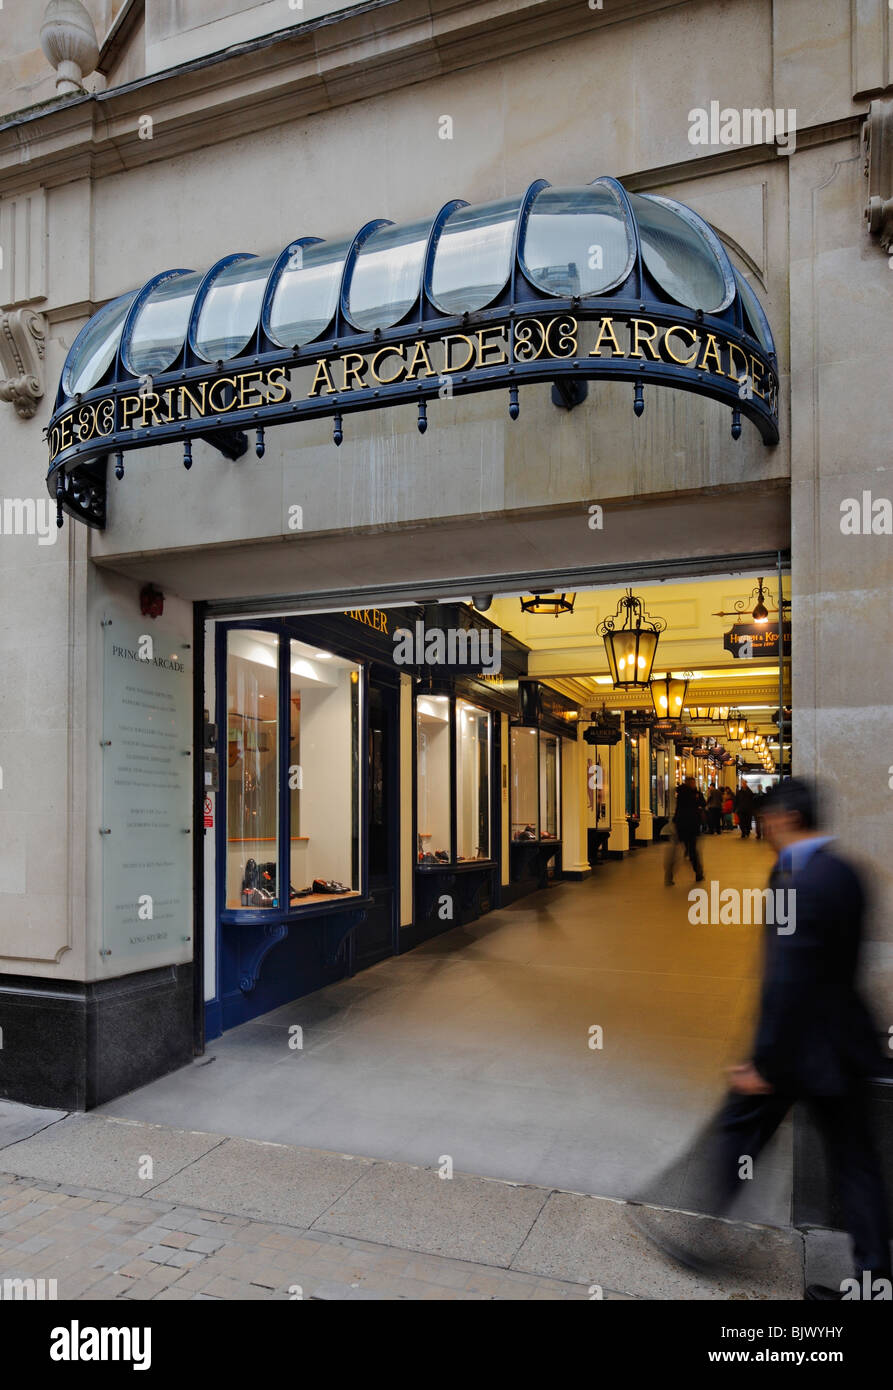 The Princes Arcade in Piccadilly. - Stock Image